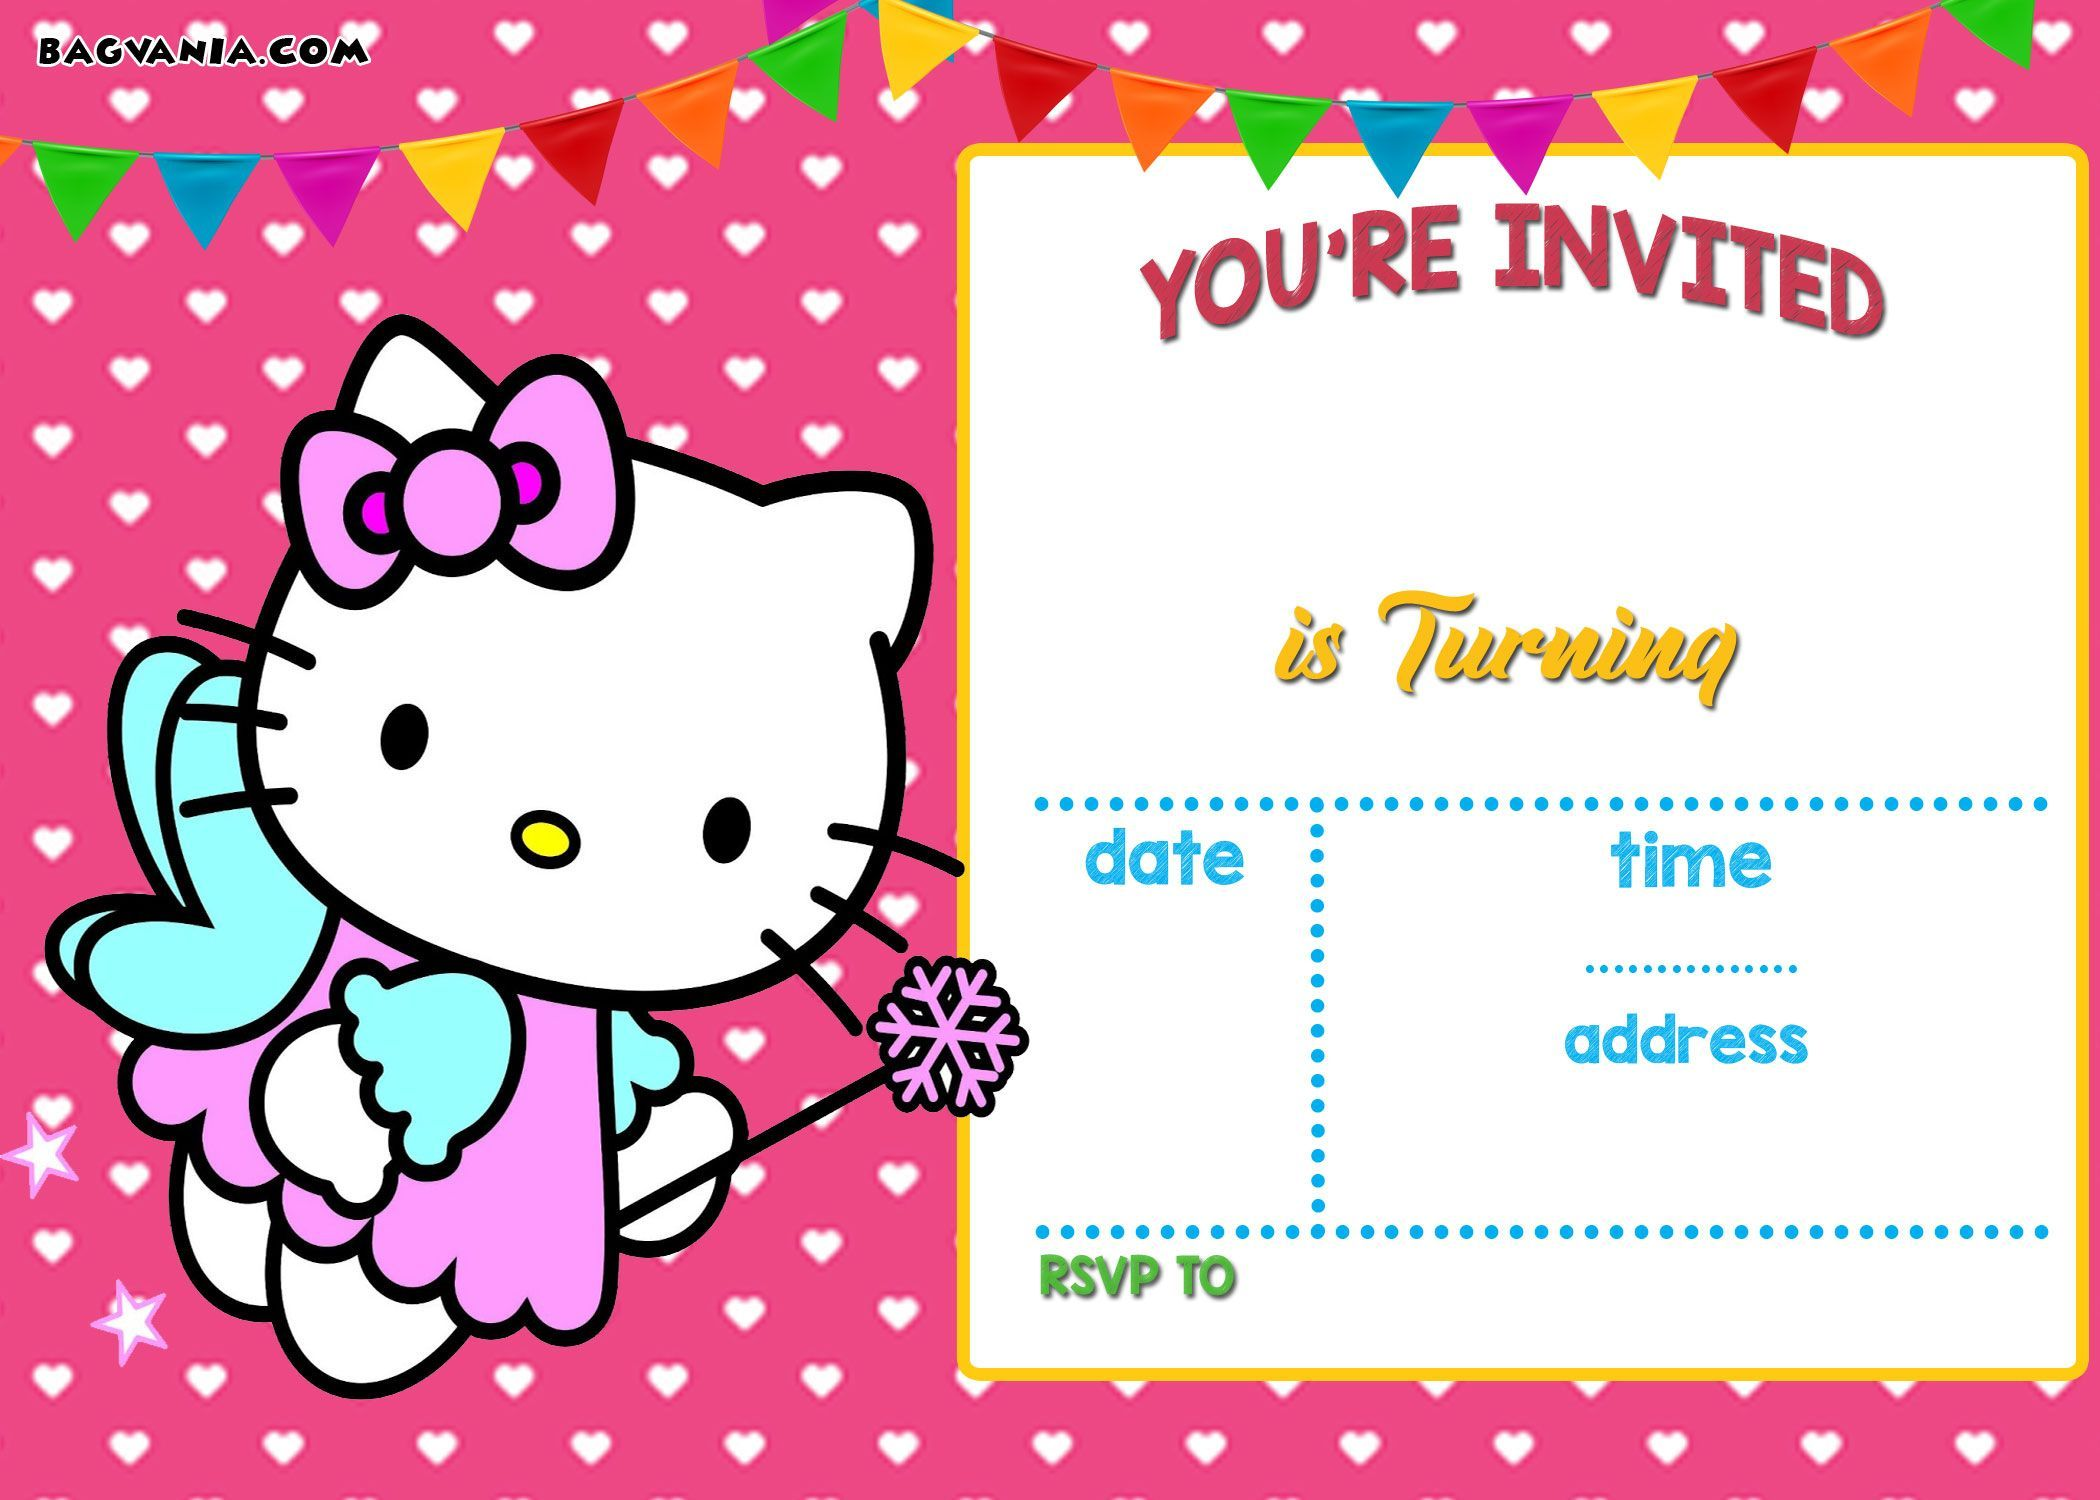 Jollibee Hello Kitty Fun Carnival Party Invitation  Hello kitty